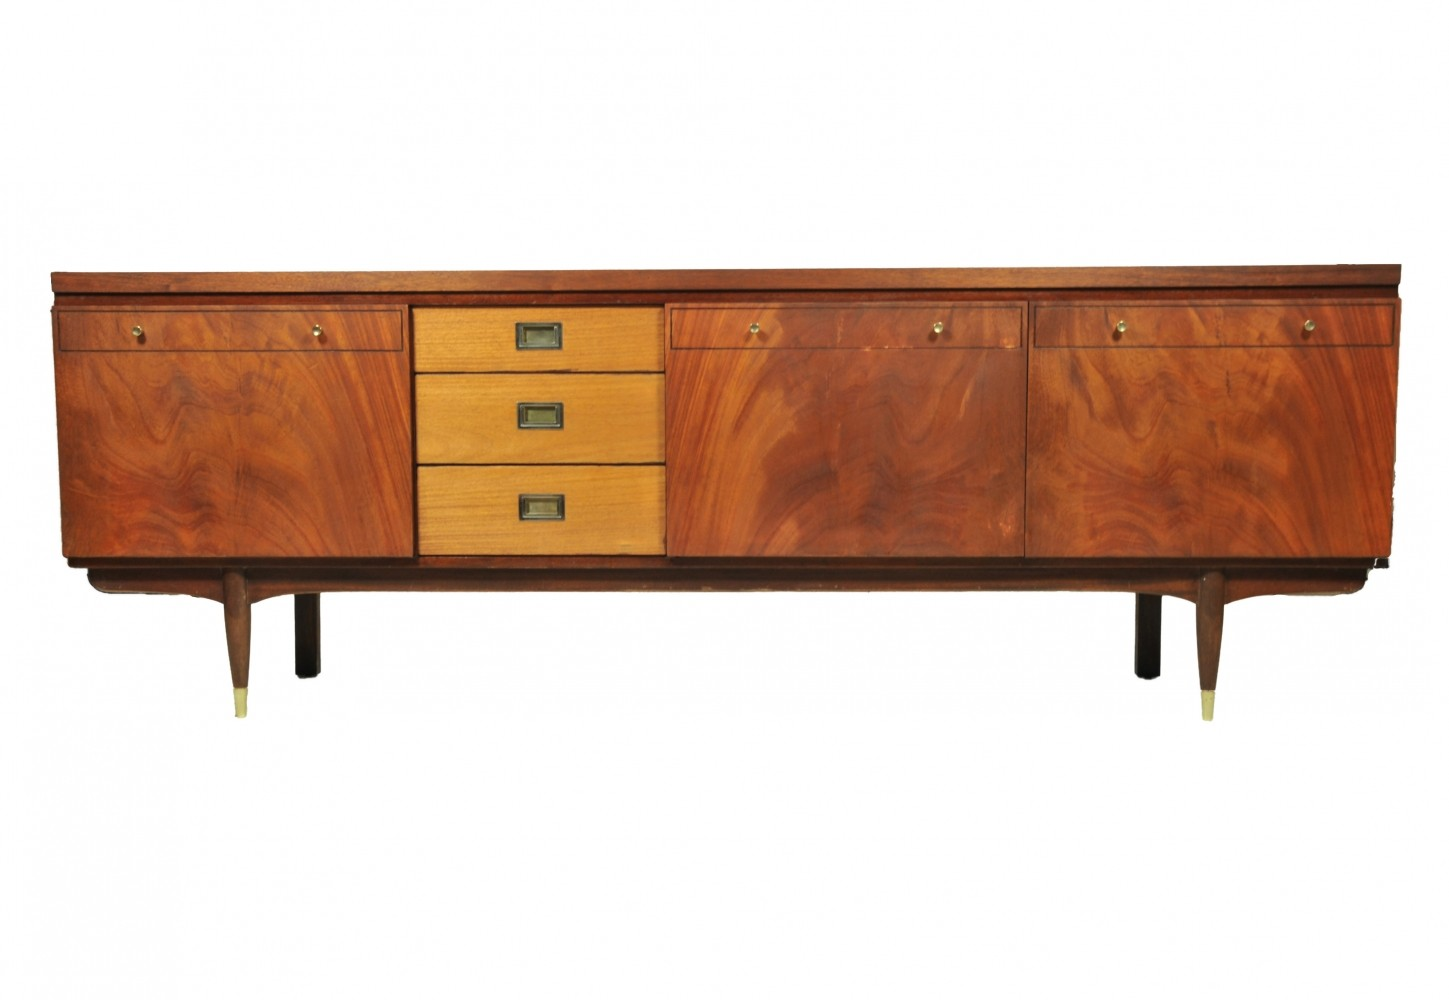 Greaves & Thomas sideboard, 1960s